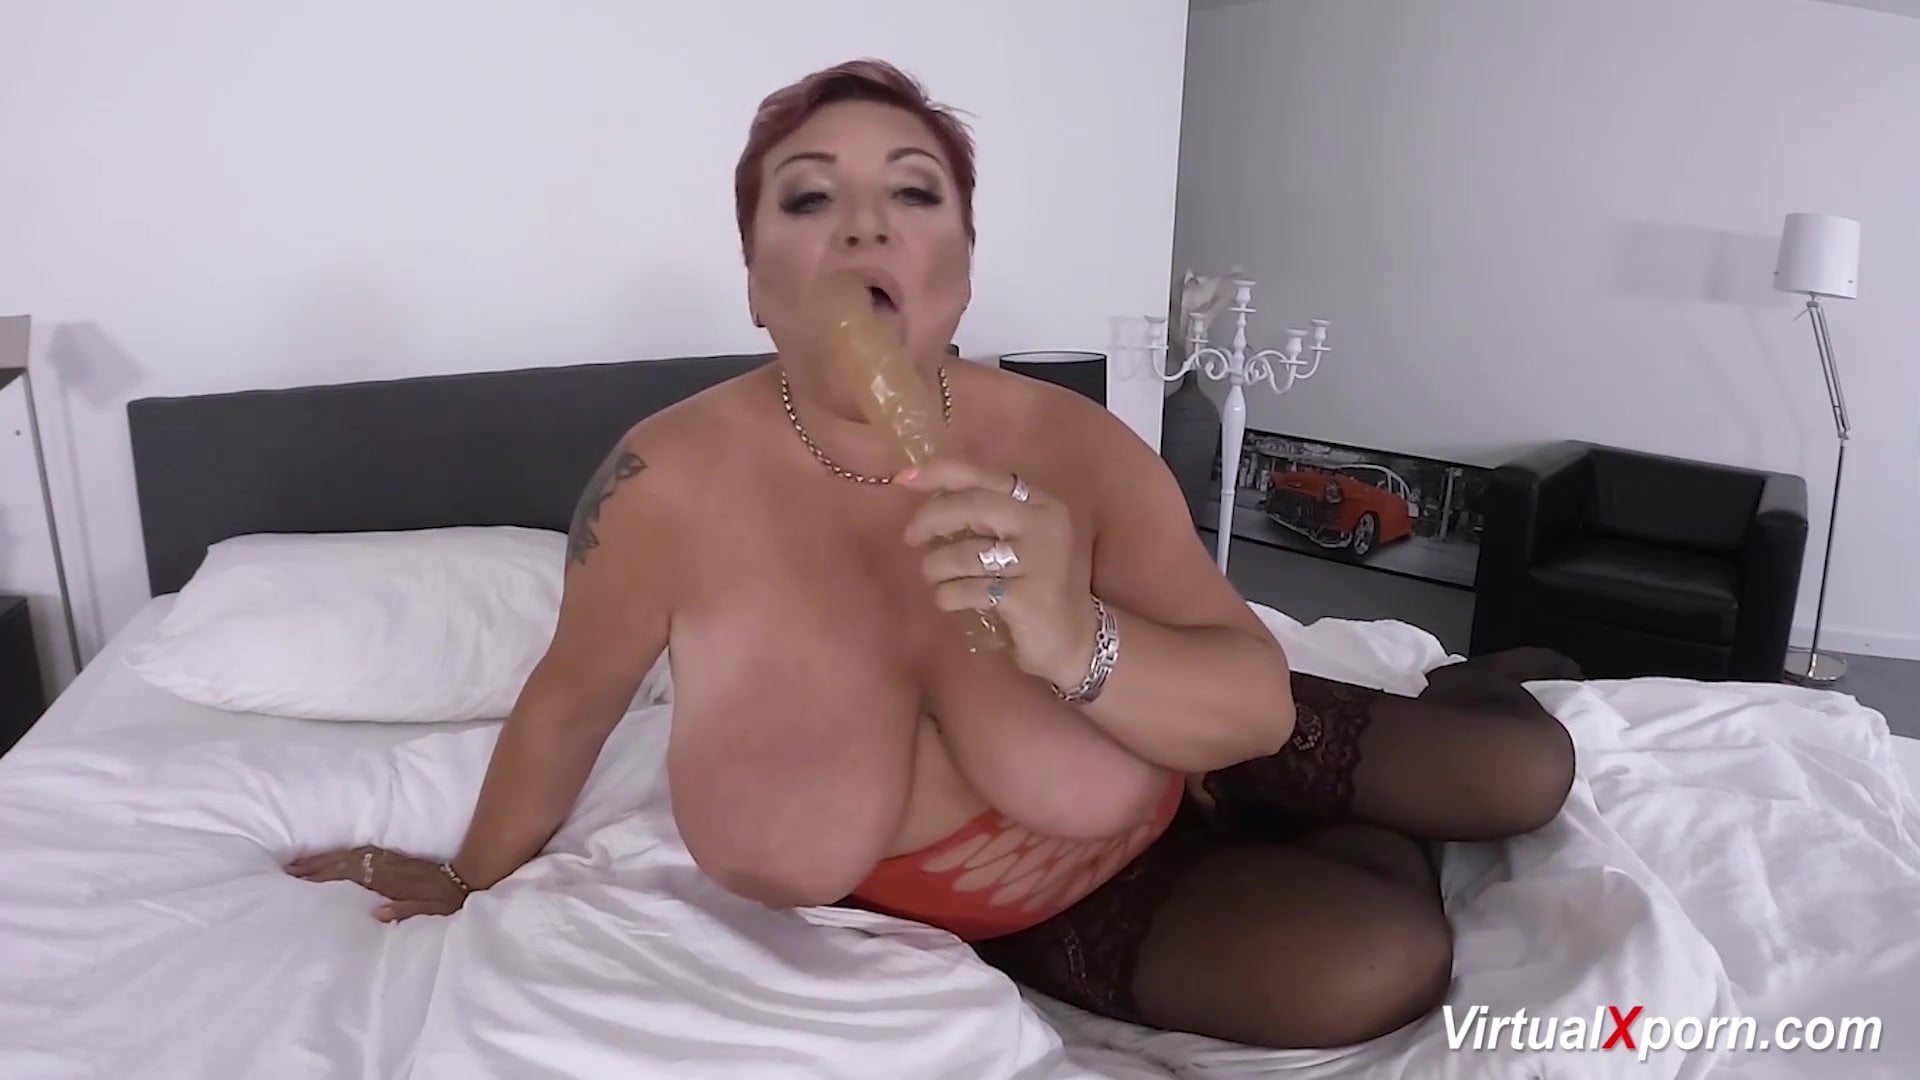 Free mautre chubby porn